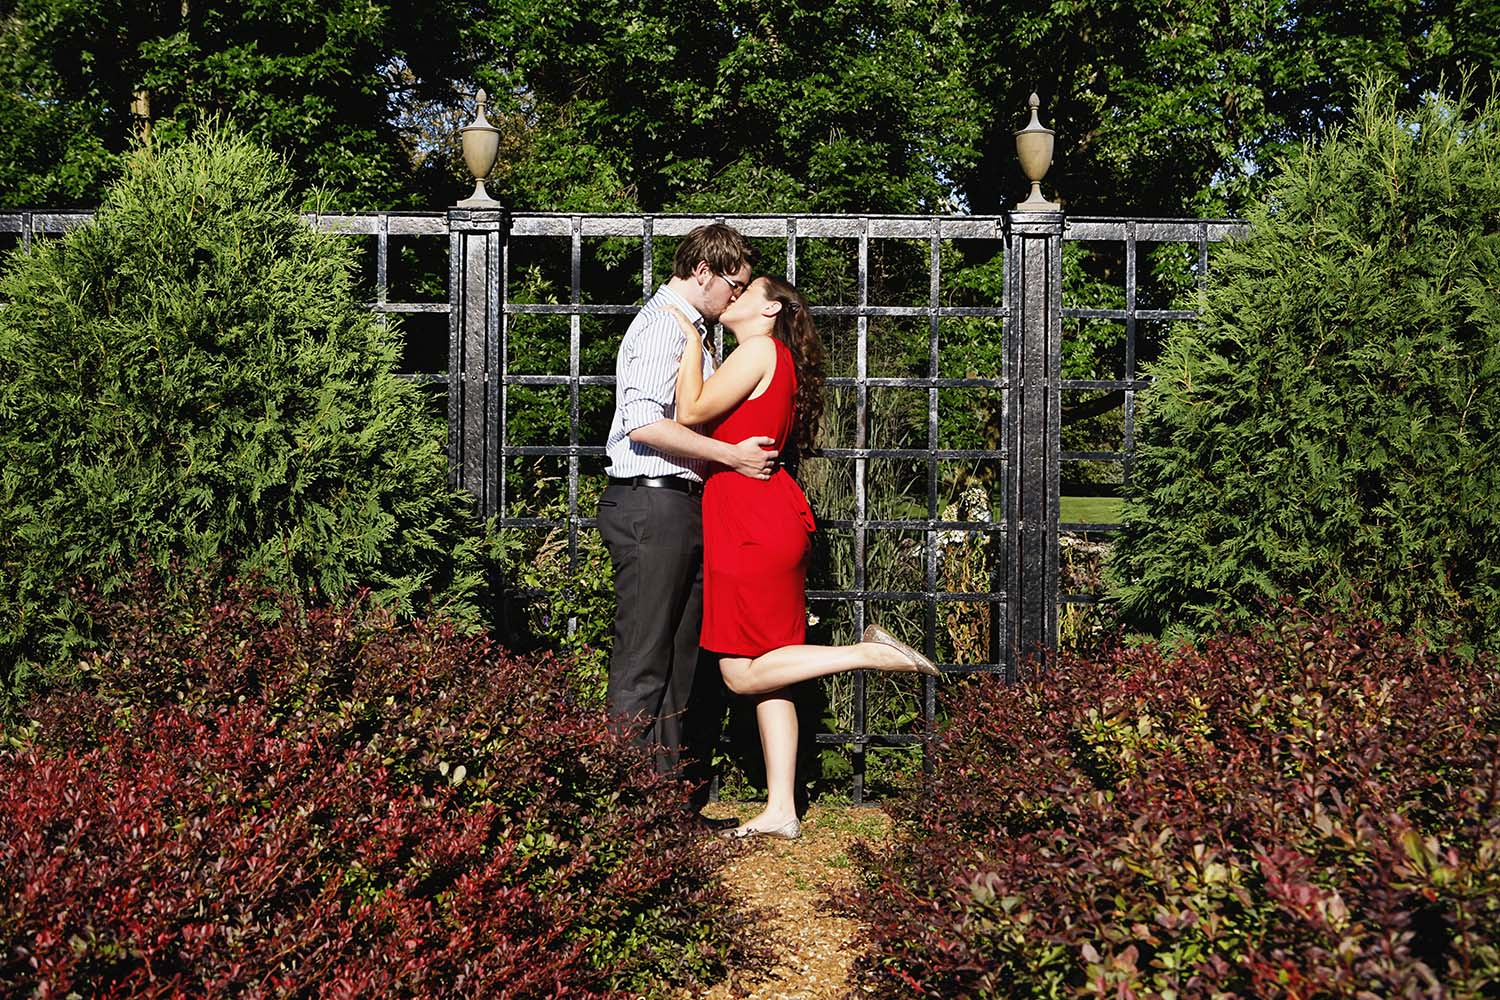 park, Engaged portraits, Cantigny, garden, nature, Twin Cities, photographers, photography, outdoors, summer, Illinois